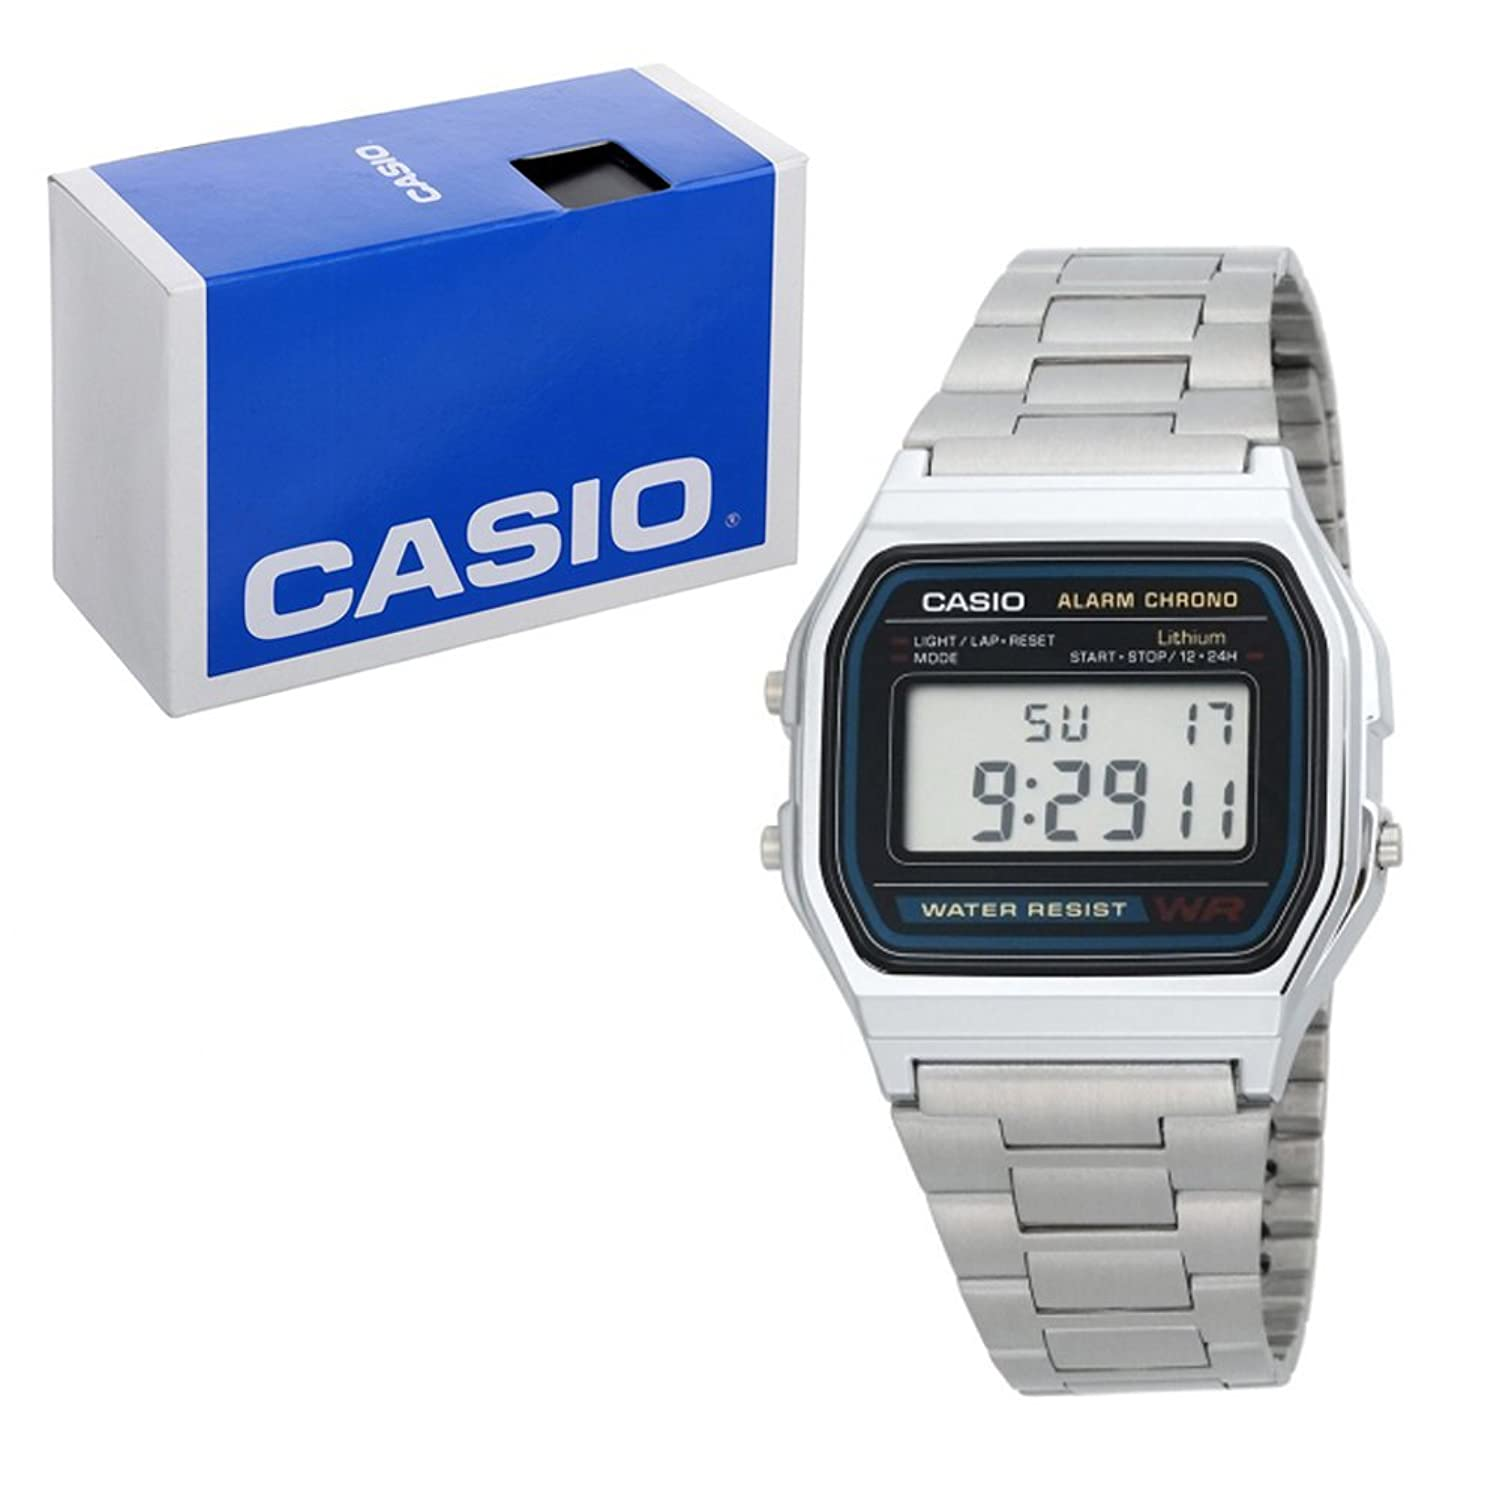 Casio A158WA - Reloj unisexo, correa de acero inoxidable color...